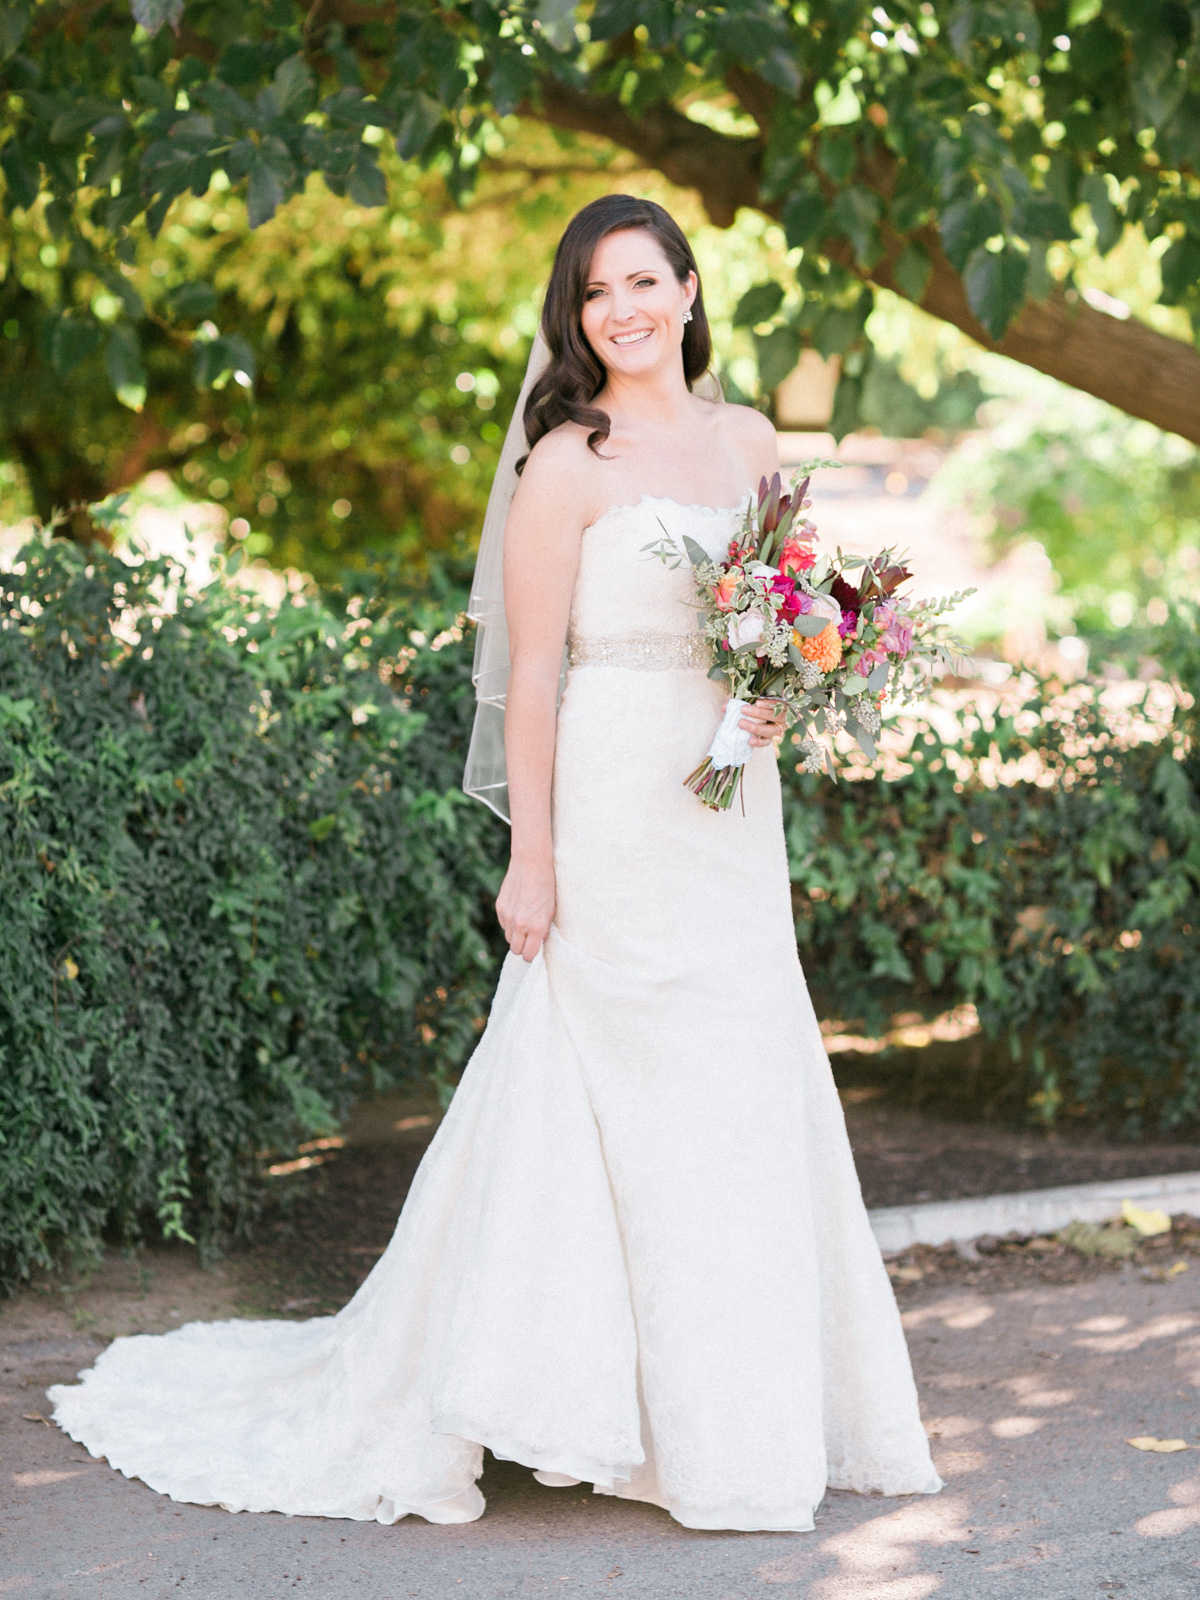 Gorgeous bride with jewel tone bouquet captured by Phoenix wedding photographers, Betsy & John